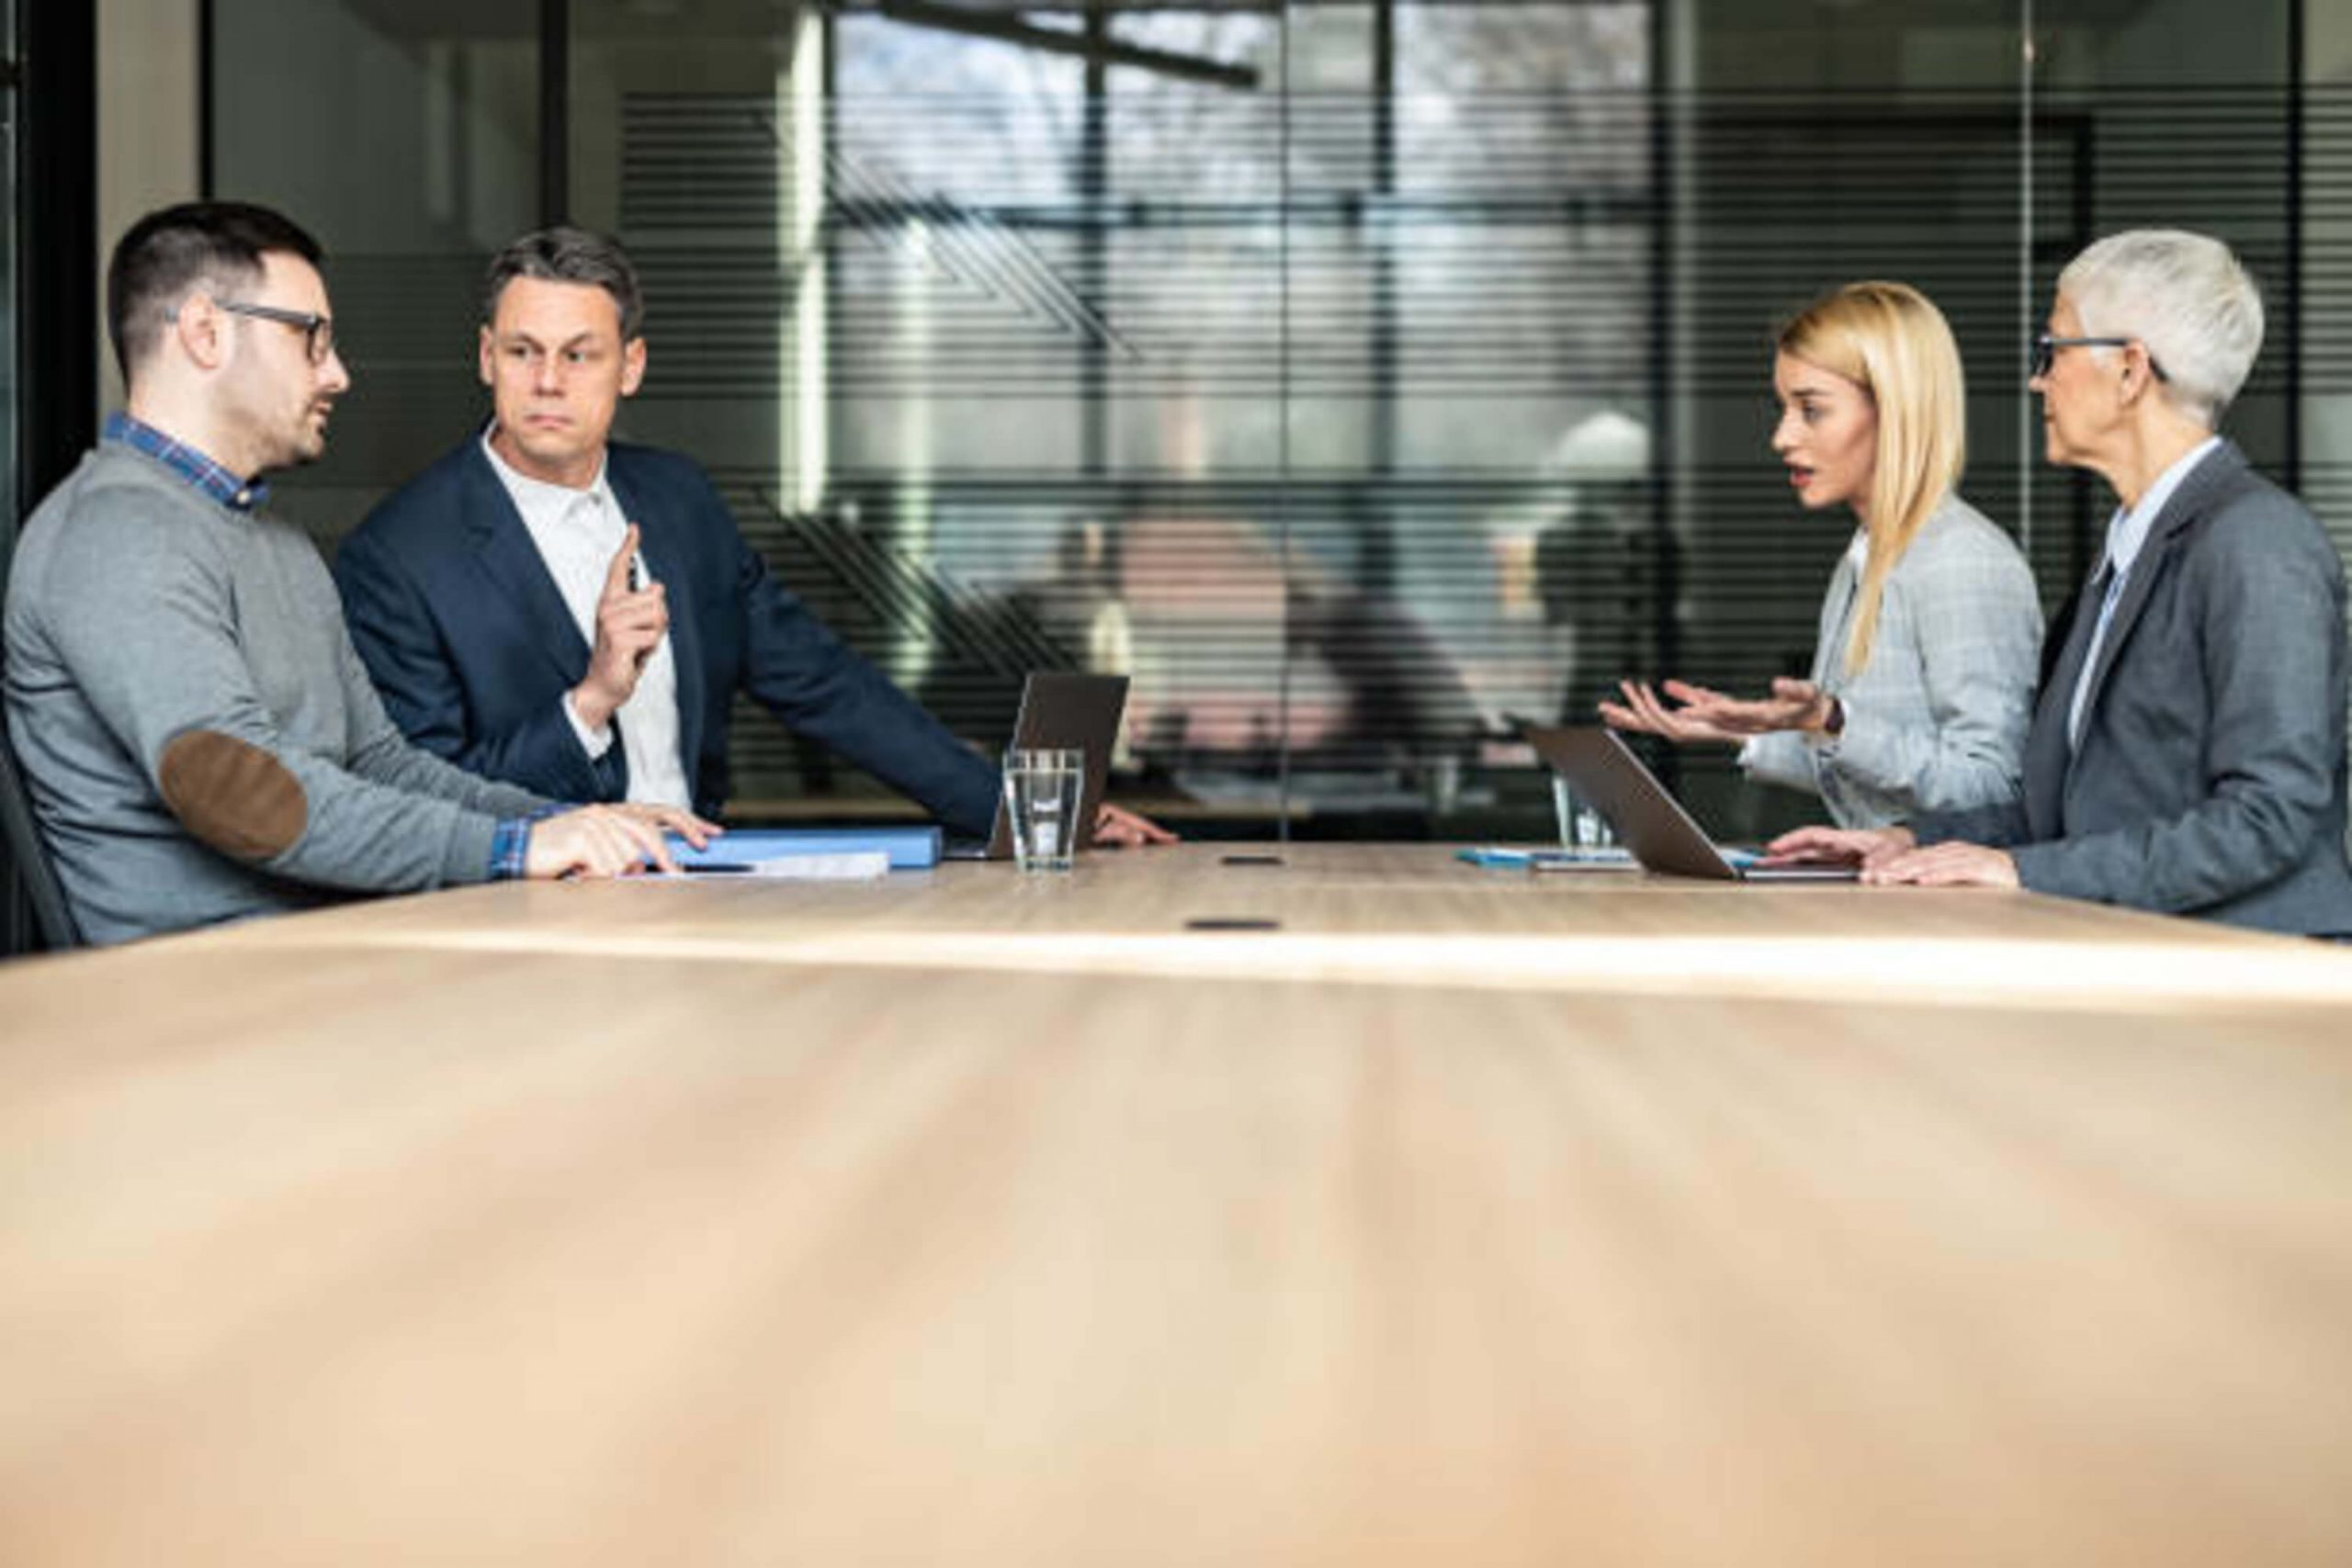 4 Hiring Mistakes That Will Get Your Business Into Legal Trouble